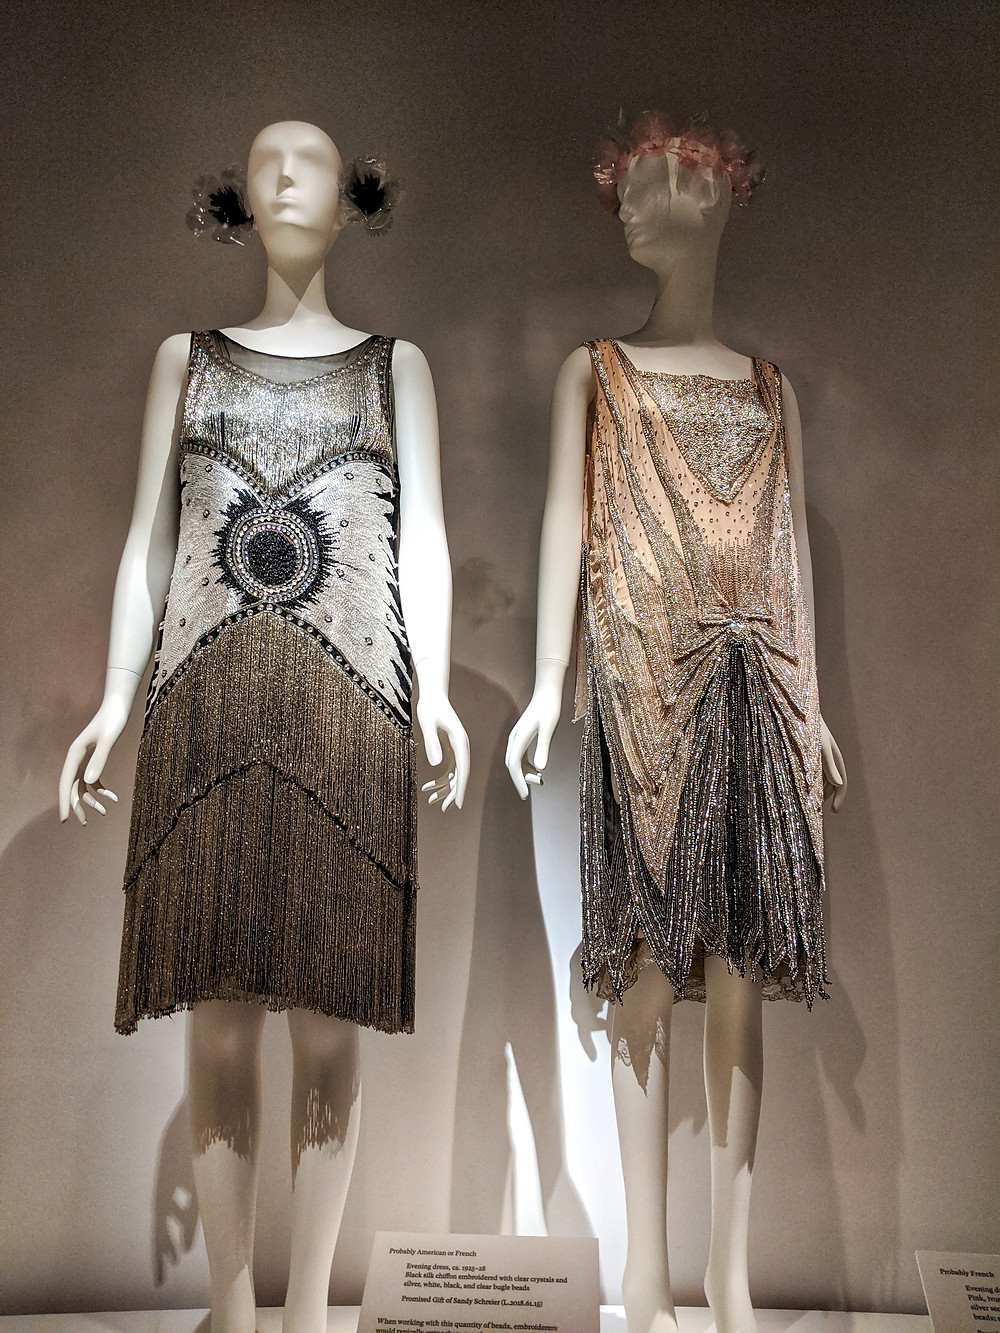 two-flapper-style-dresses-on-manequins-from-museum-exhibit